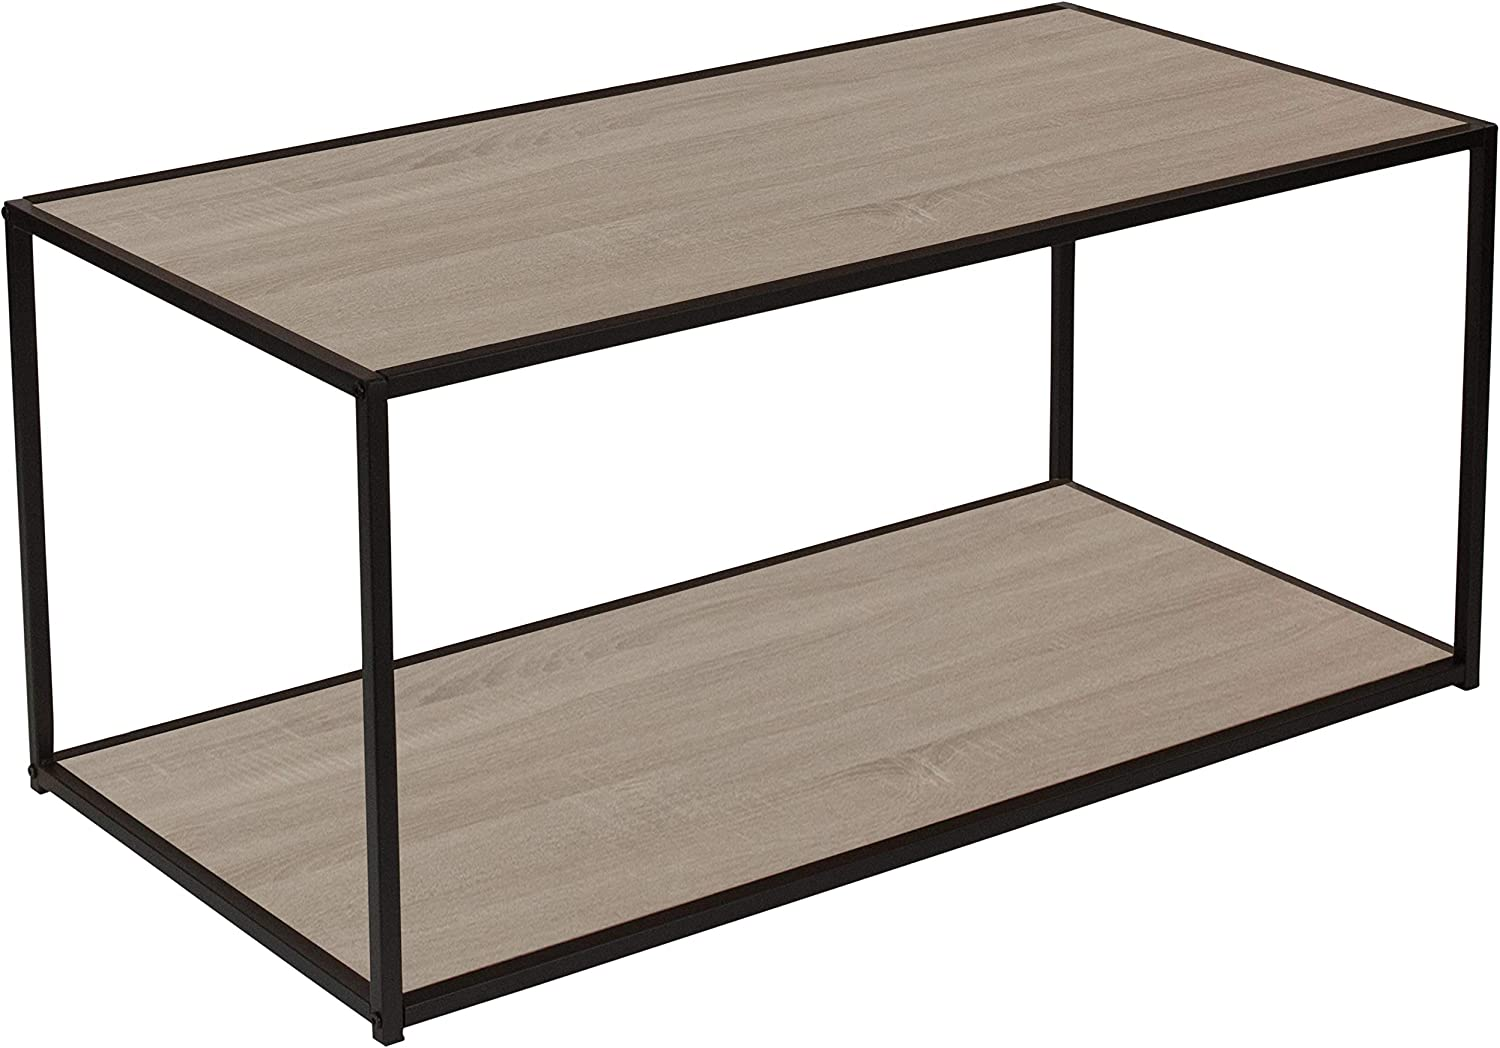 Flash Furniture Midtown Collection Sonoma Oak Wood Grain Finish Coffee Table with Black Metal Frame